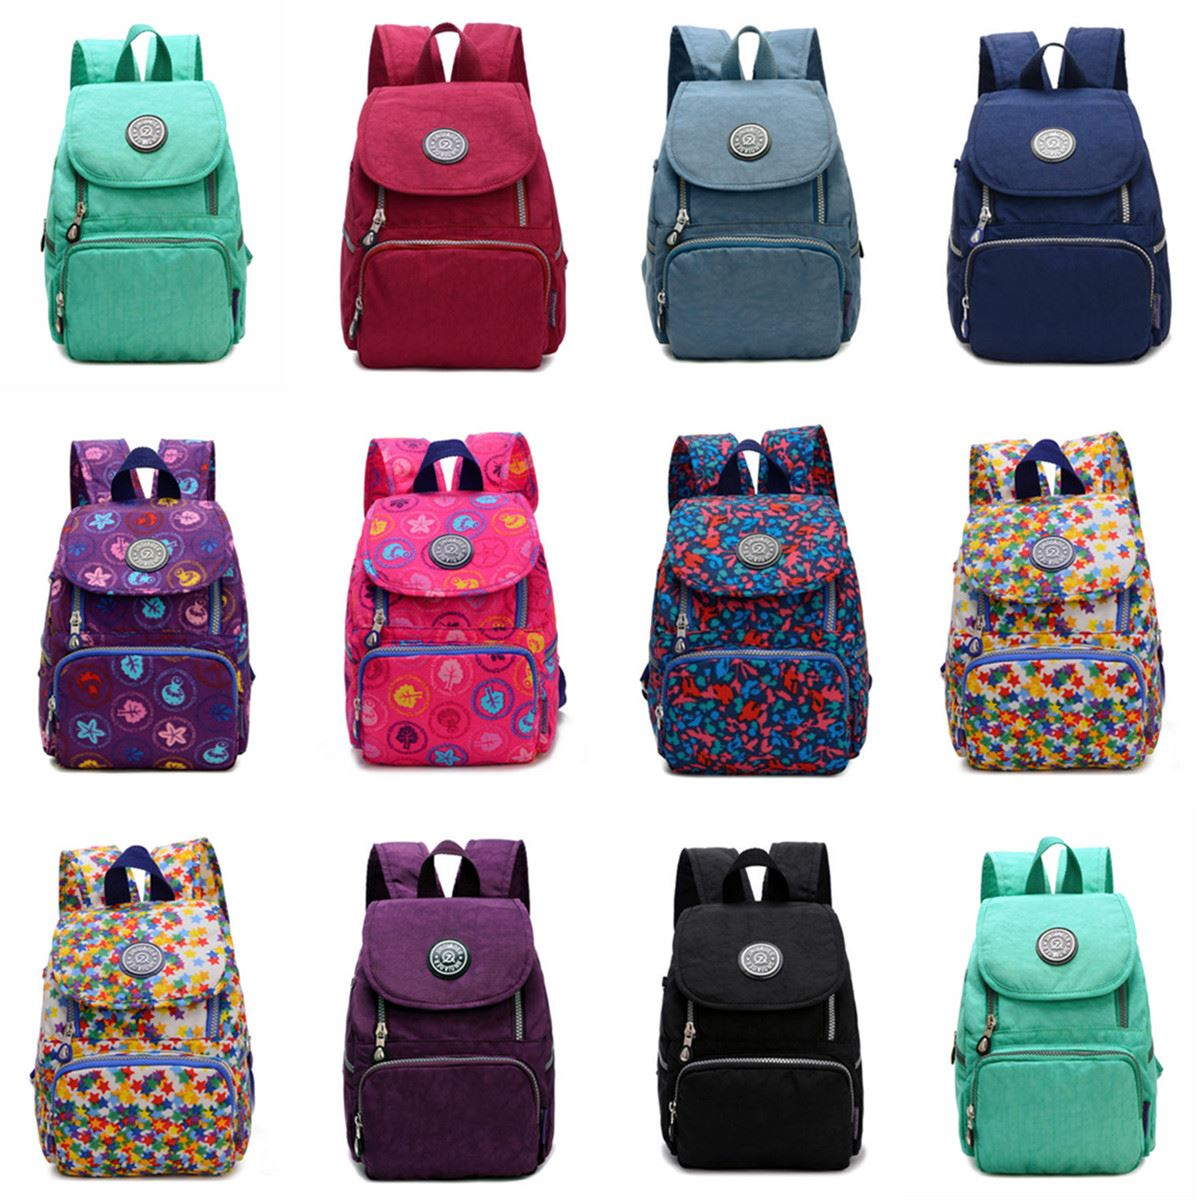 Small Backpacks For Hiking sq4ZAkxp